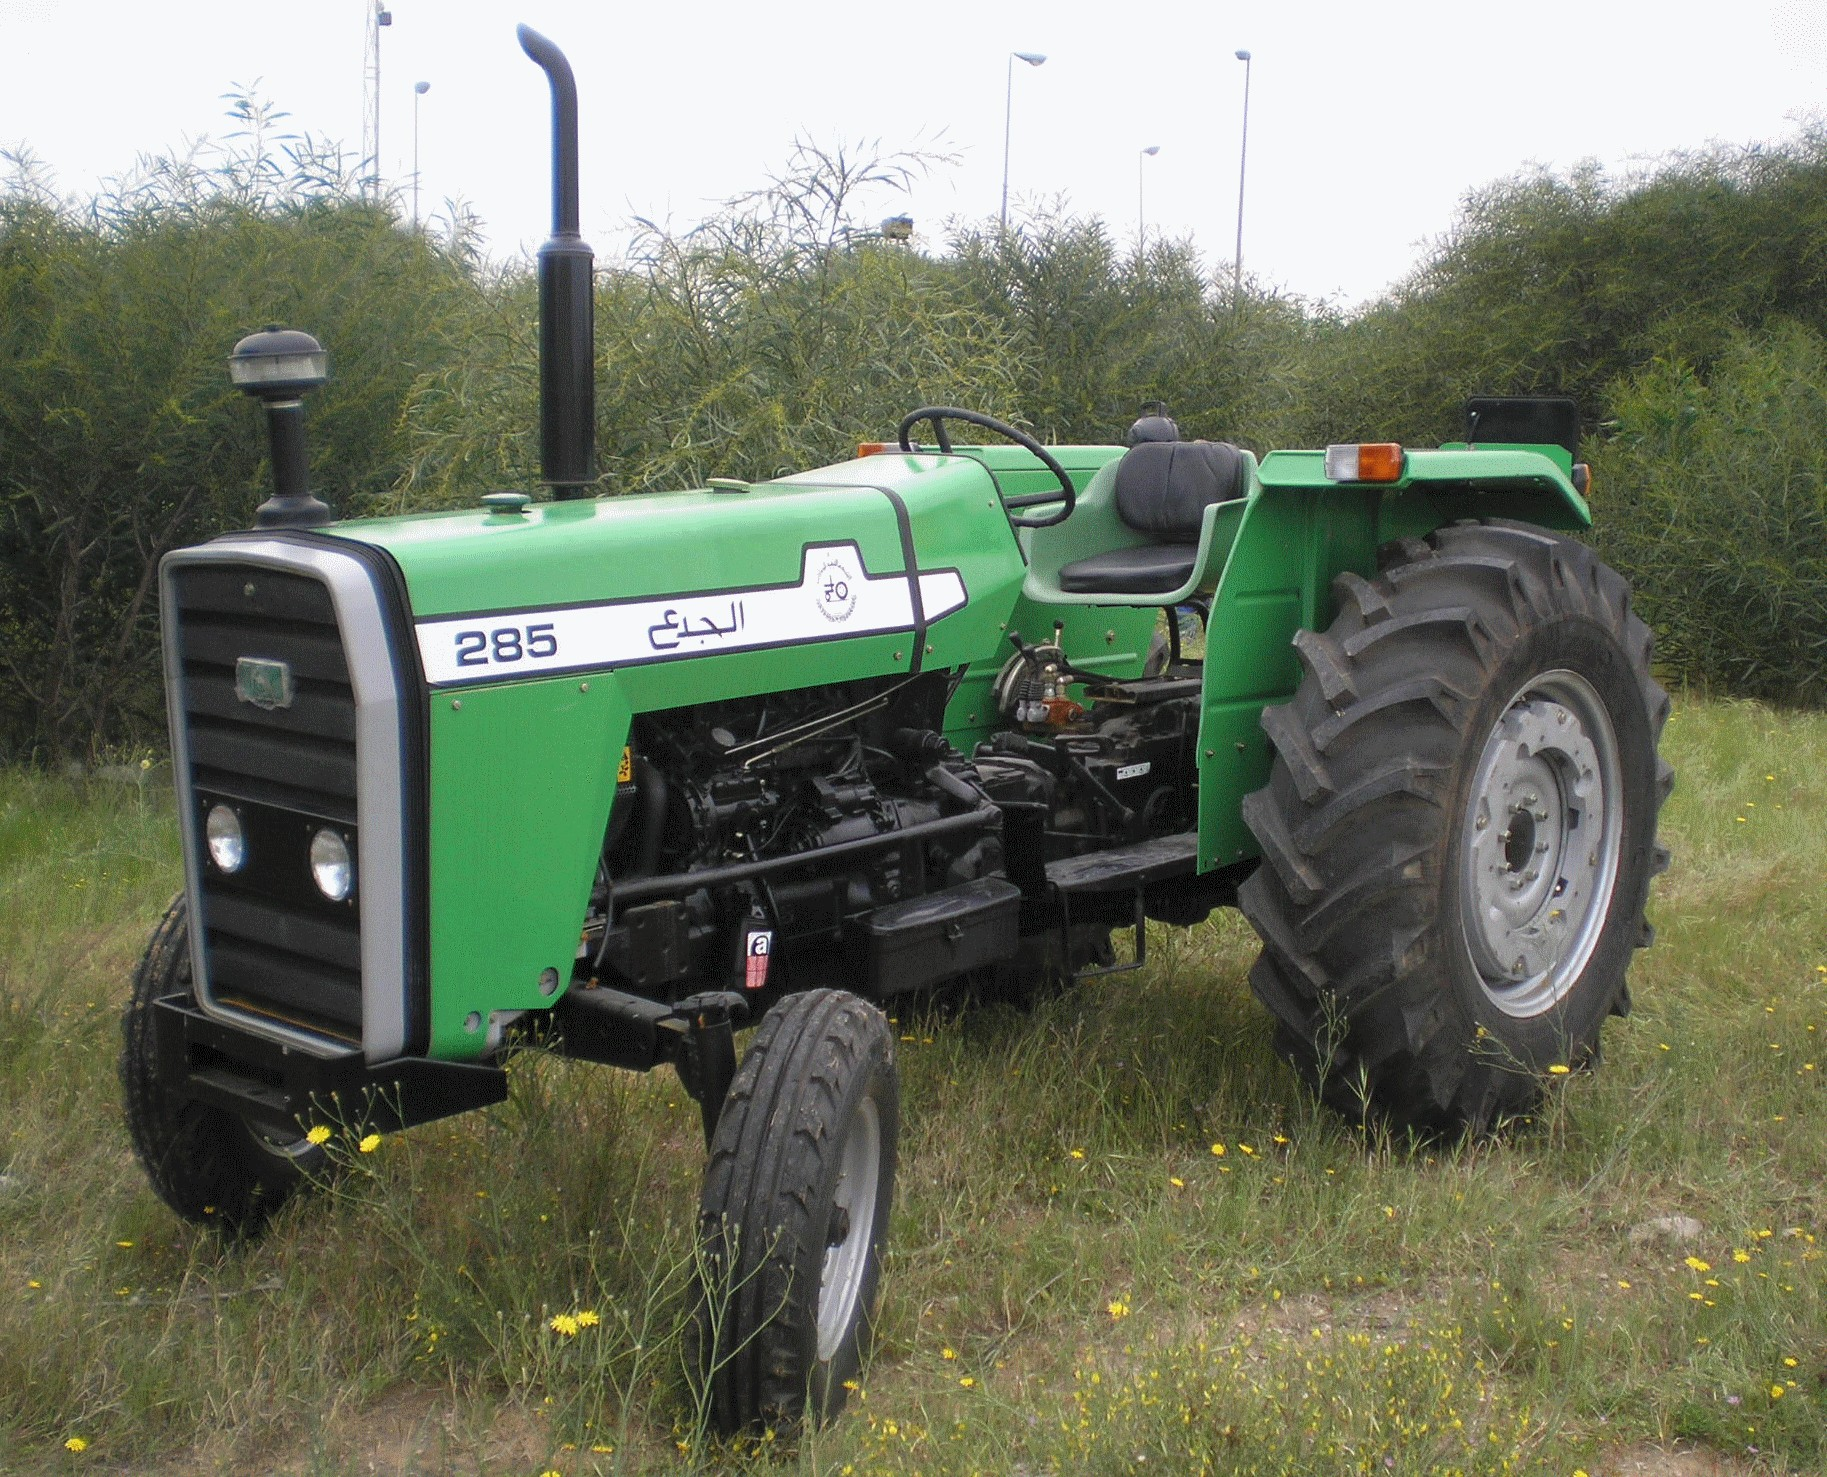 Category:80 hp tractors | Tractor & Construction Plant Wiki | FANDOM  powered by Wikia